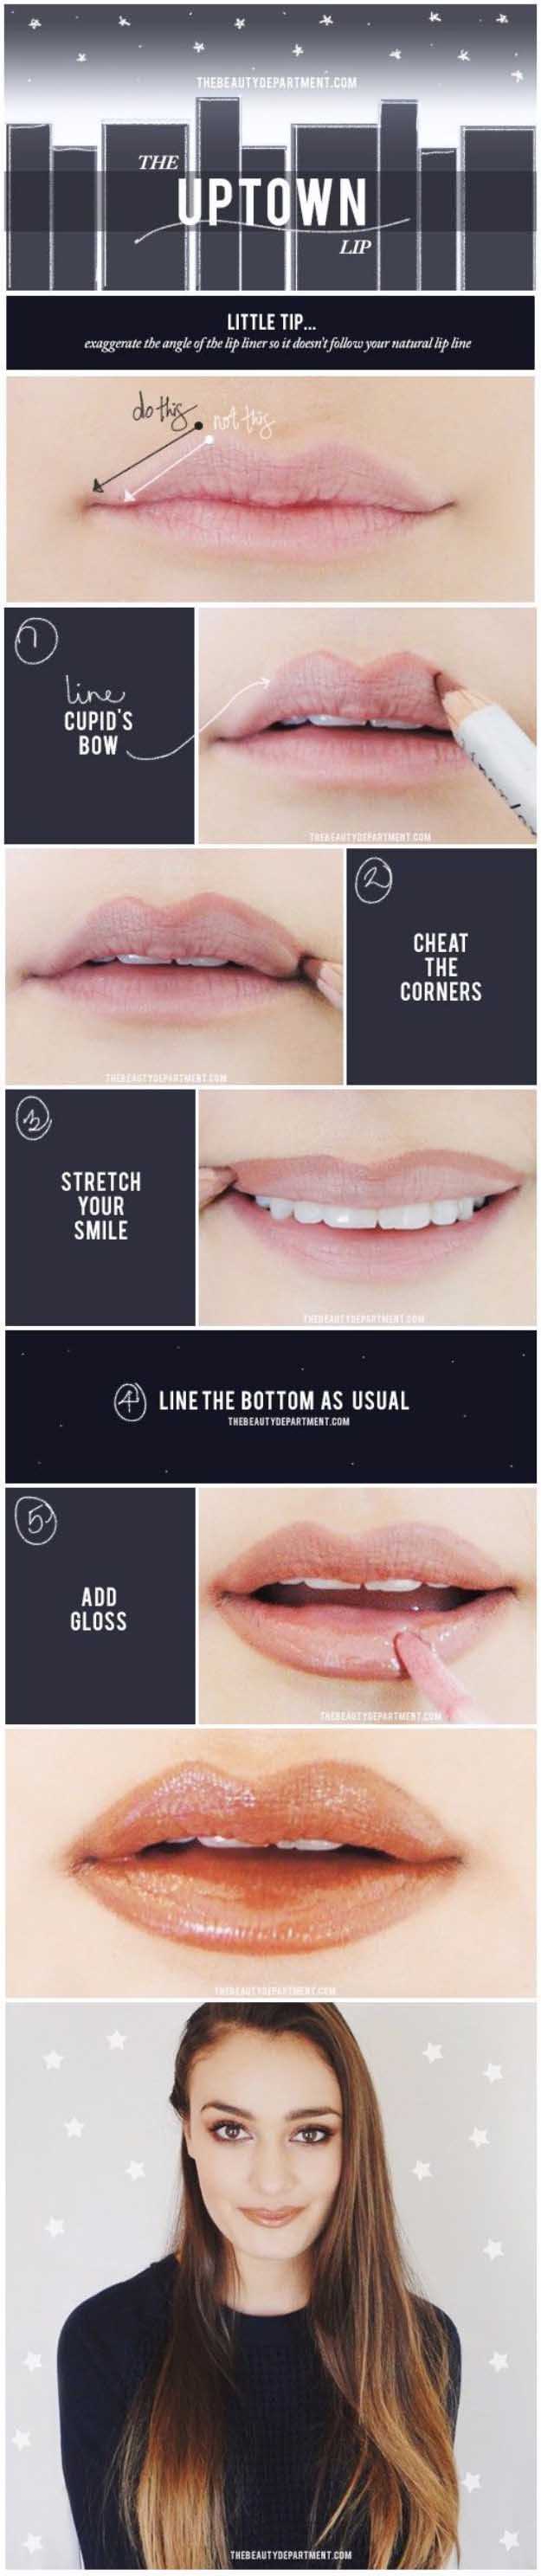 Tips for Lining Your Lips Like a Pro - A QUICK LIP TIP - Easy Tutorials and Awesome Hacks For Lip Liners - Kylie Jenner Tutorials and Black Women Tips - Thin Contouring Tutorials and Hacks for Eye Brows - Natural Shape Eyes - Simple Tricks for How to Apply Pencil Liners and Eyeshadows - thegoddess.com/tips-lining-your-lips